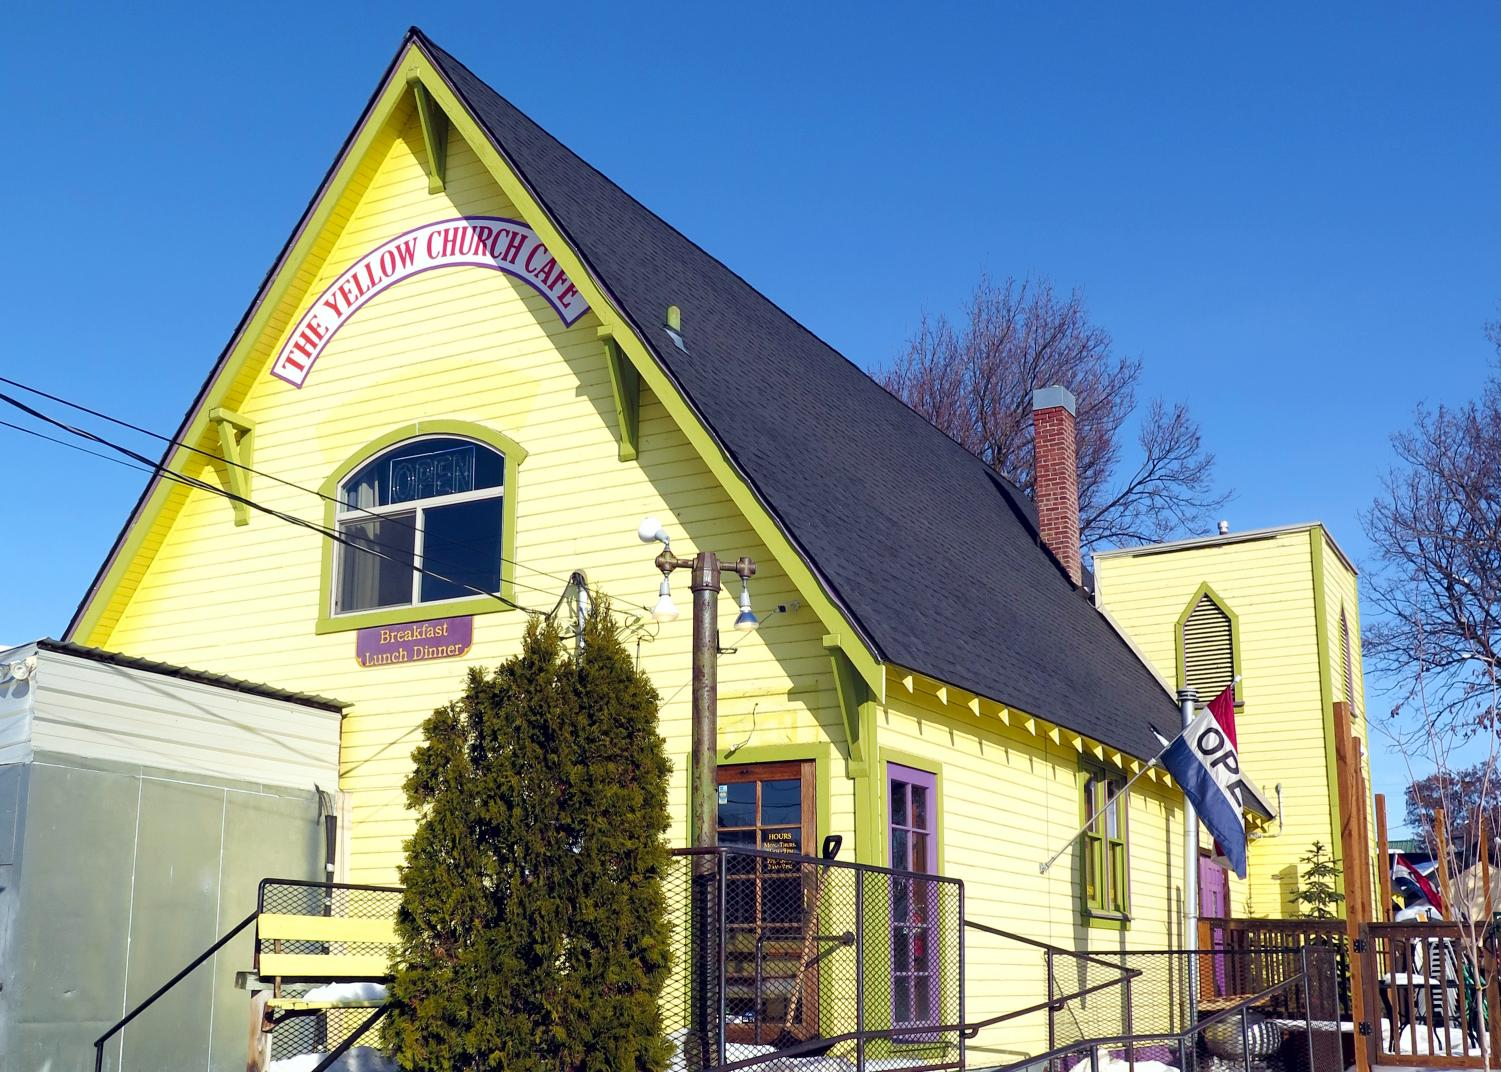 The Yellow Church Café, located at 111 S Pearl Street, is known in the community for its relaxed atmosphere and homestyle cooking. The building is difficult to miss with its bright coloring.